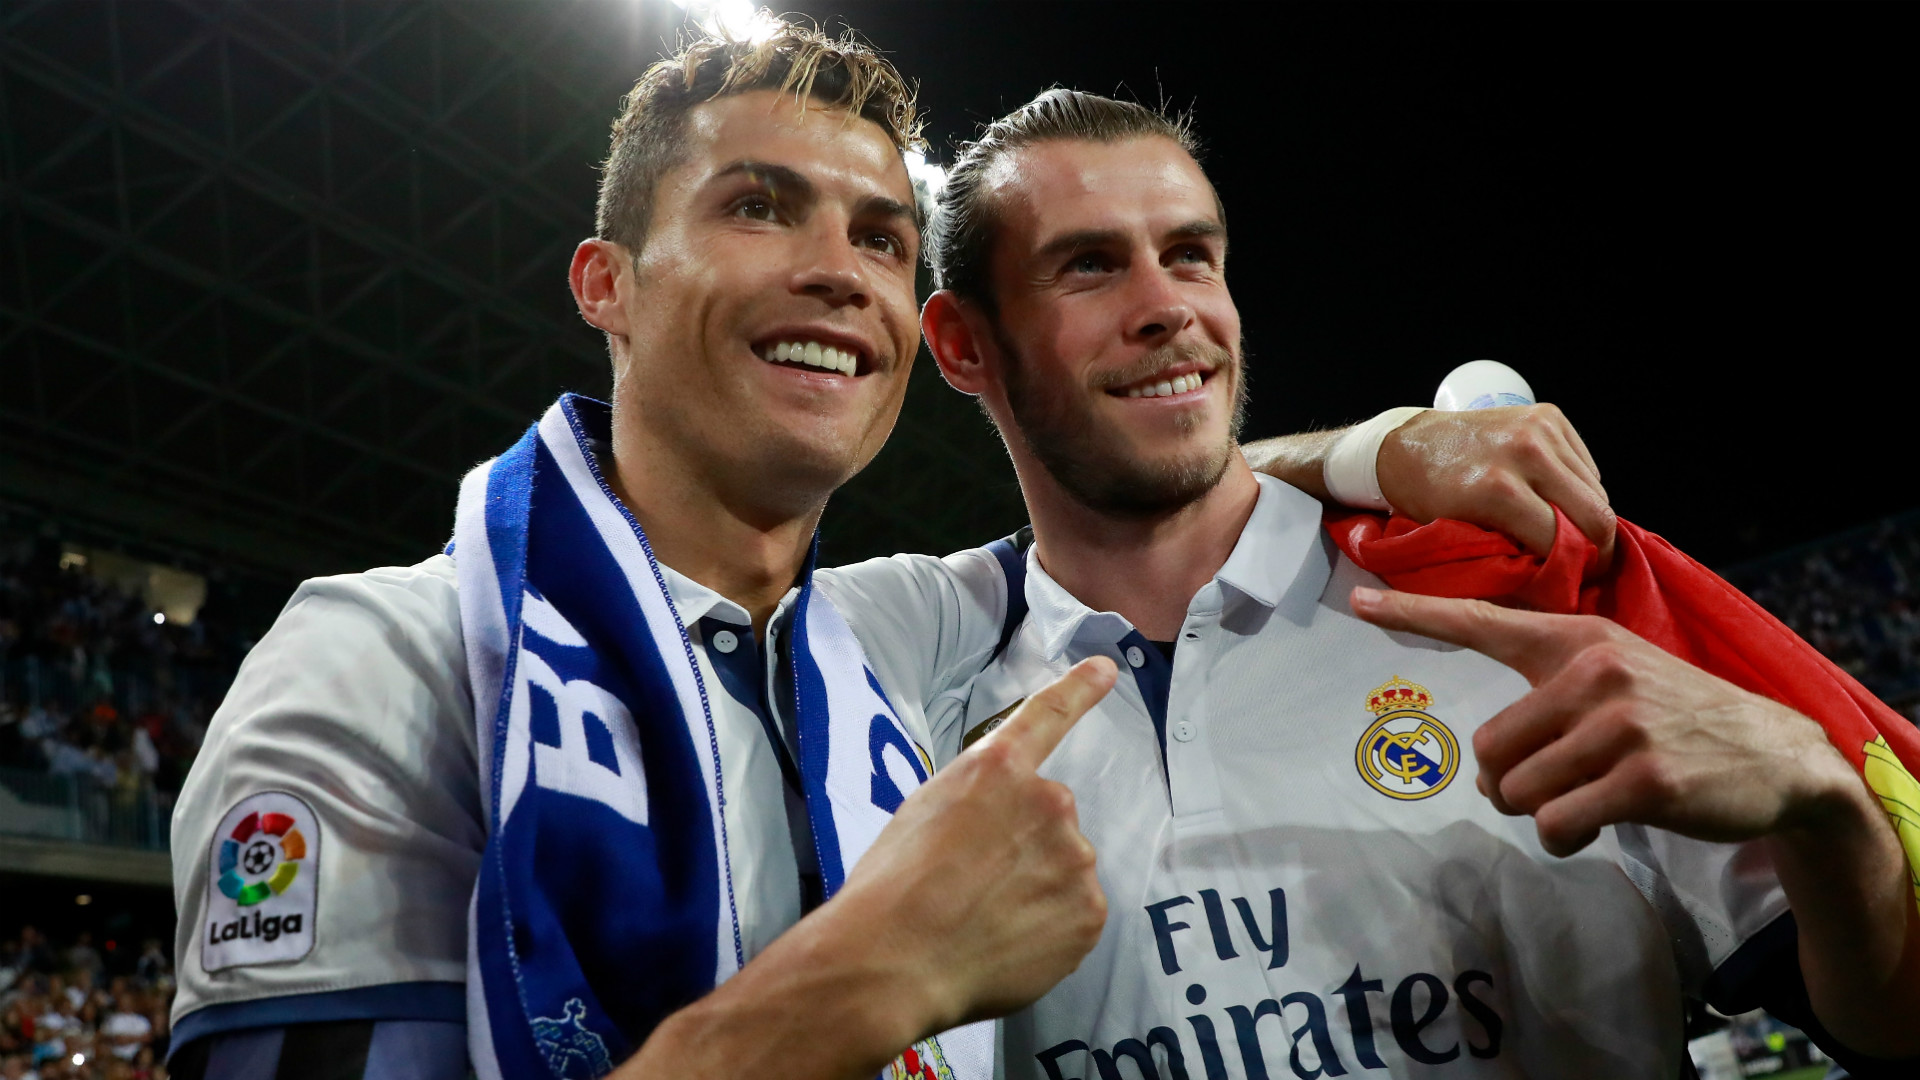 Gareth Bale to Manchester United: Real Madrid star discusses Old Trafford links